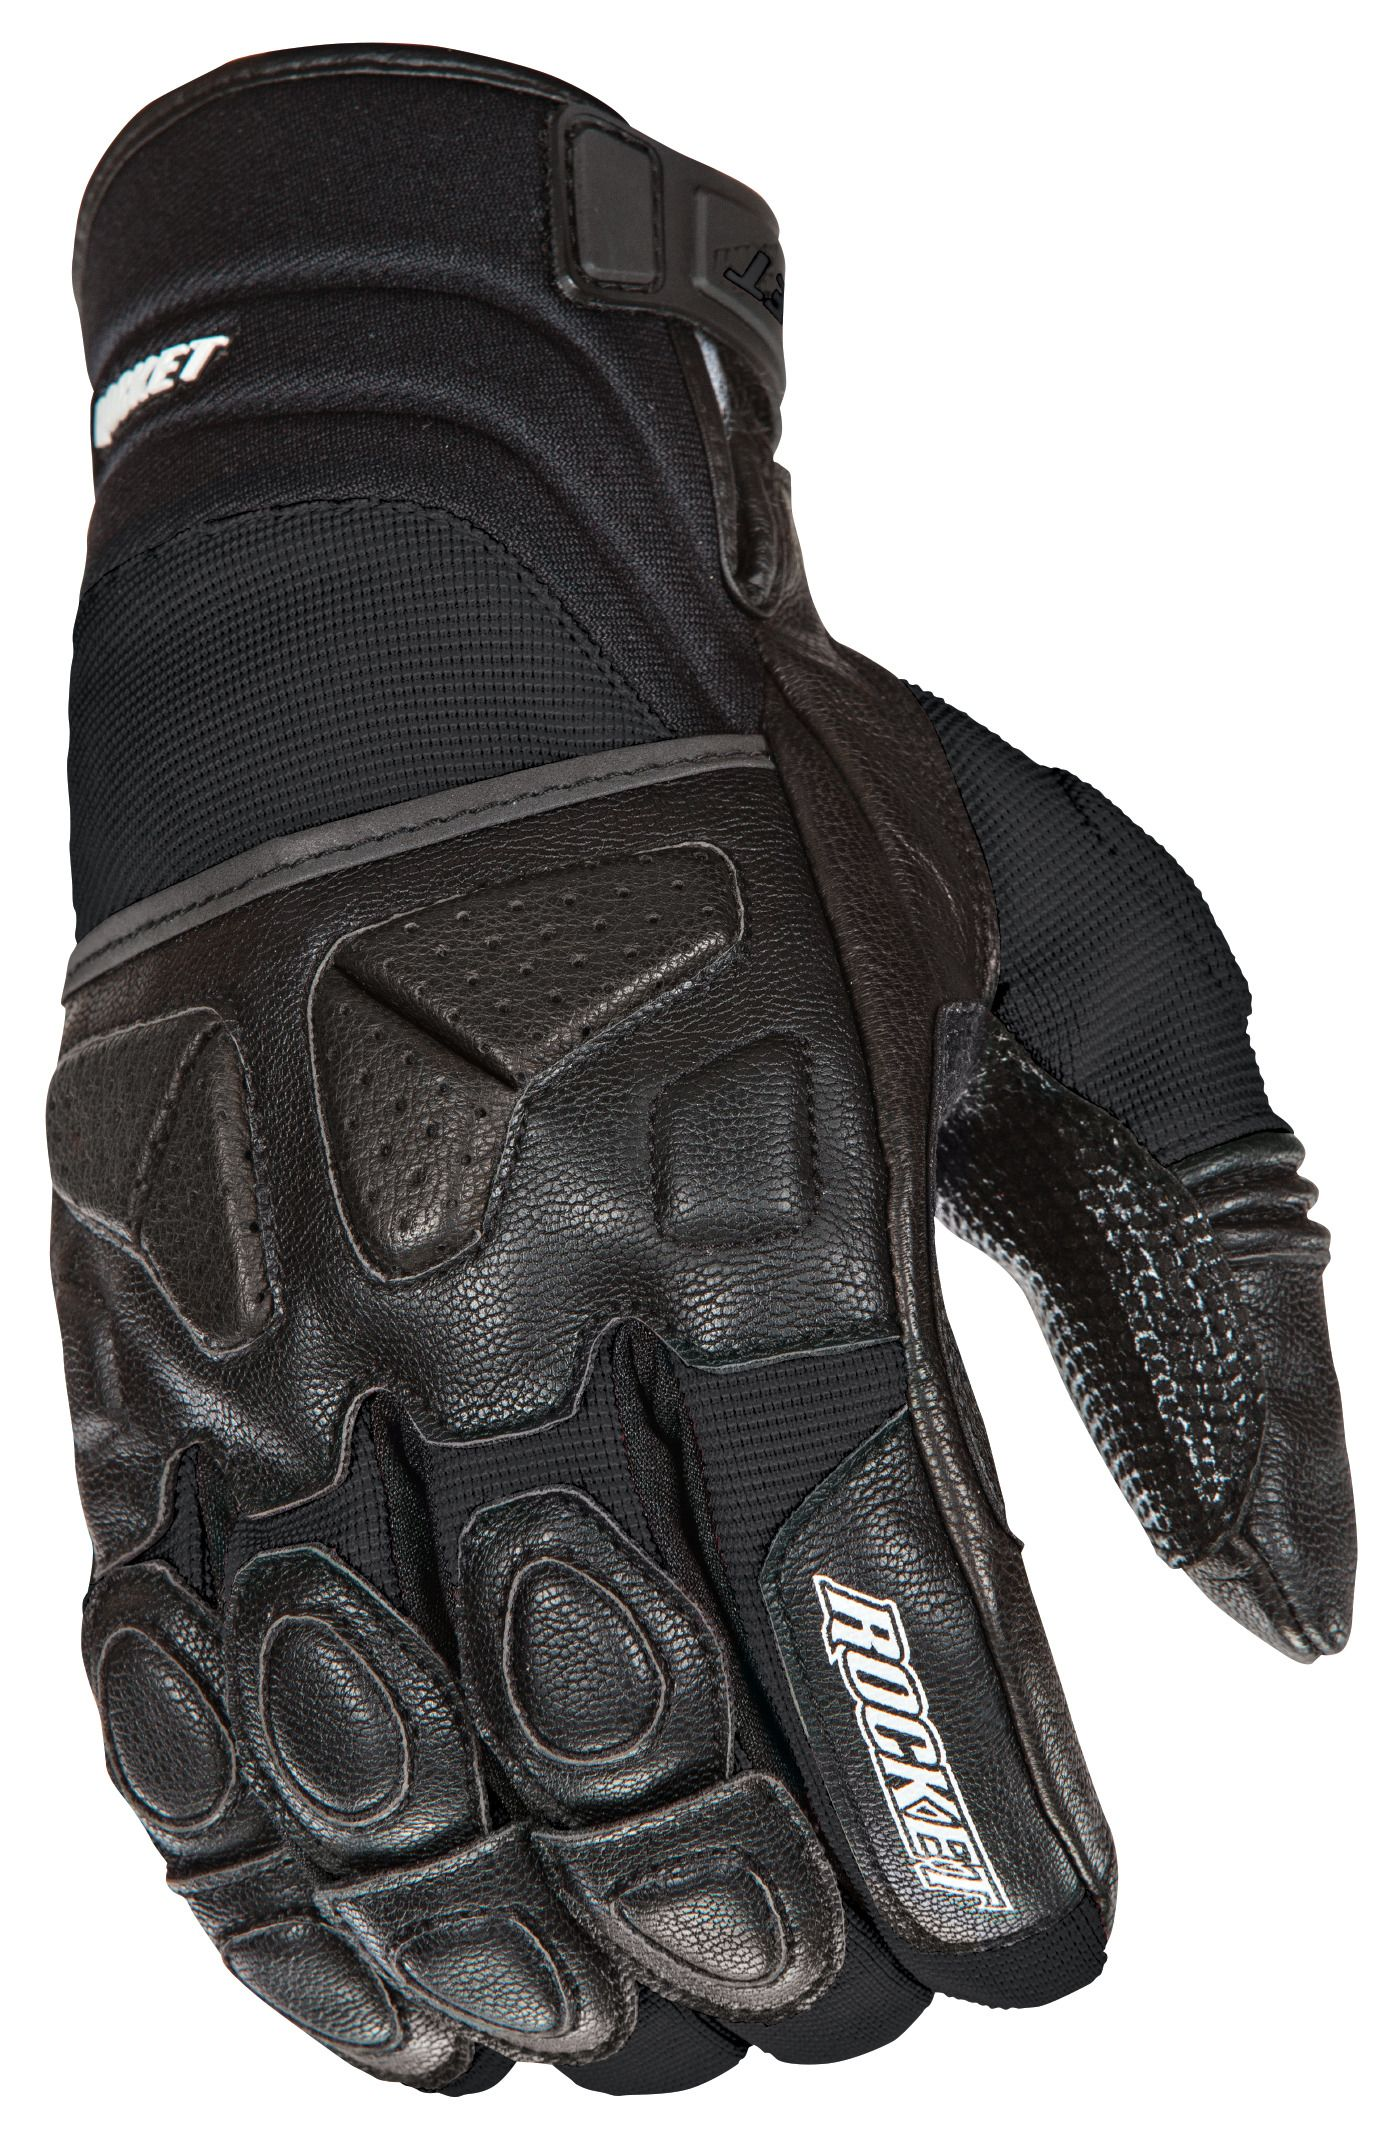 Motorcycle gloves for summer - Motorcycle Gloves For Summer 55